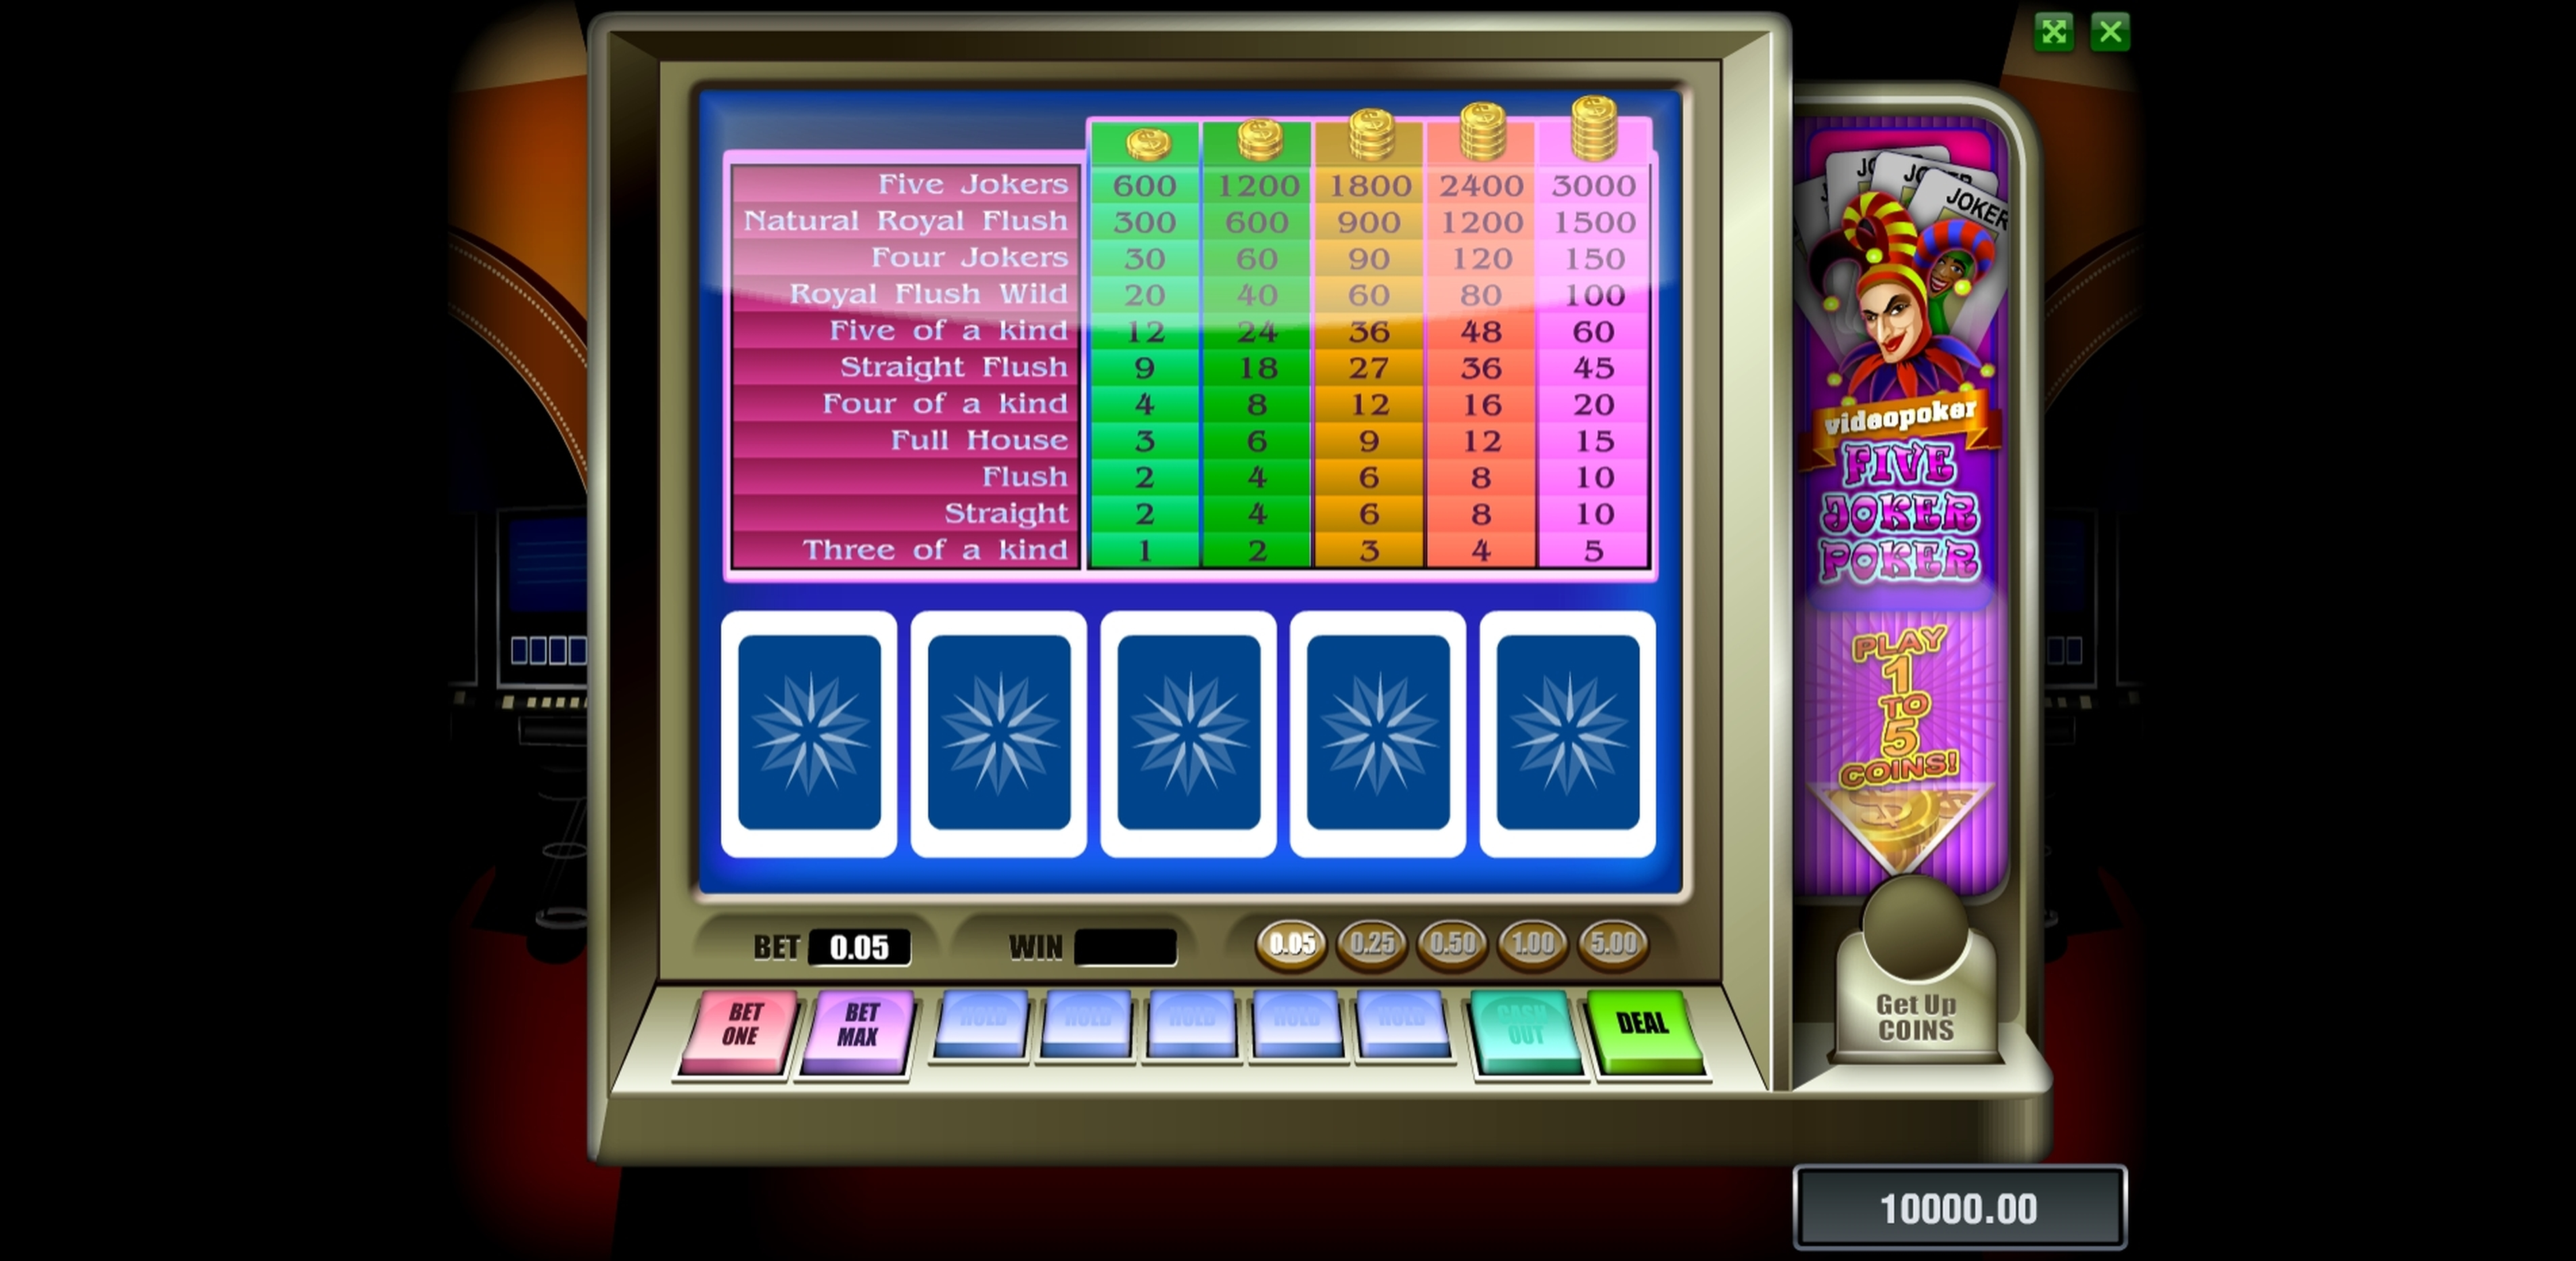 Reels in Five Joker Poker Slot Game by Novomatic